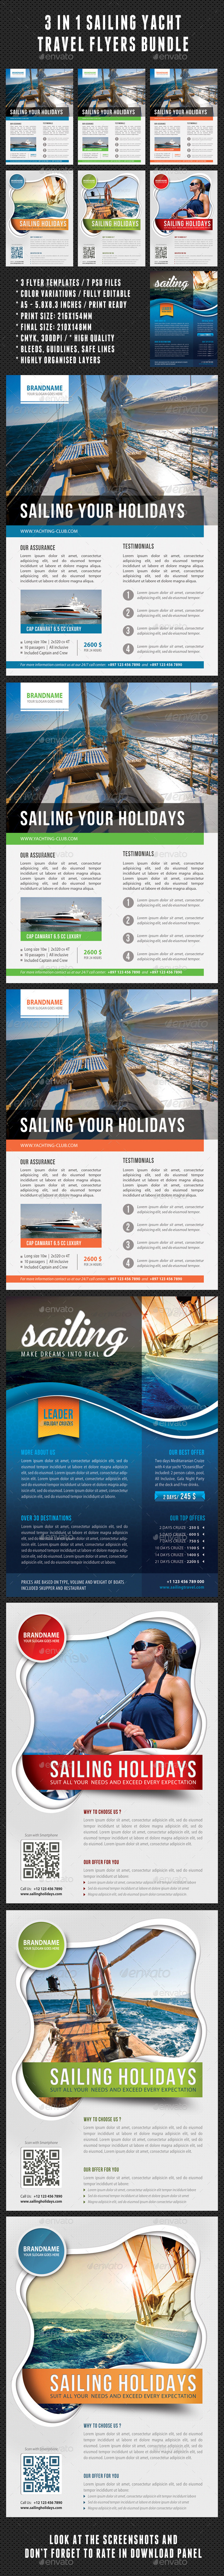 GraphicRiver 3 in 1 Sailing Yacht Travel Flyers Bundle 8906600